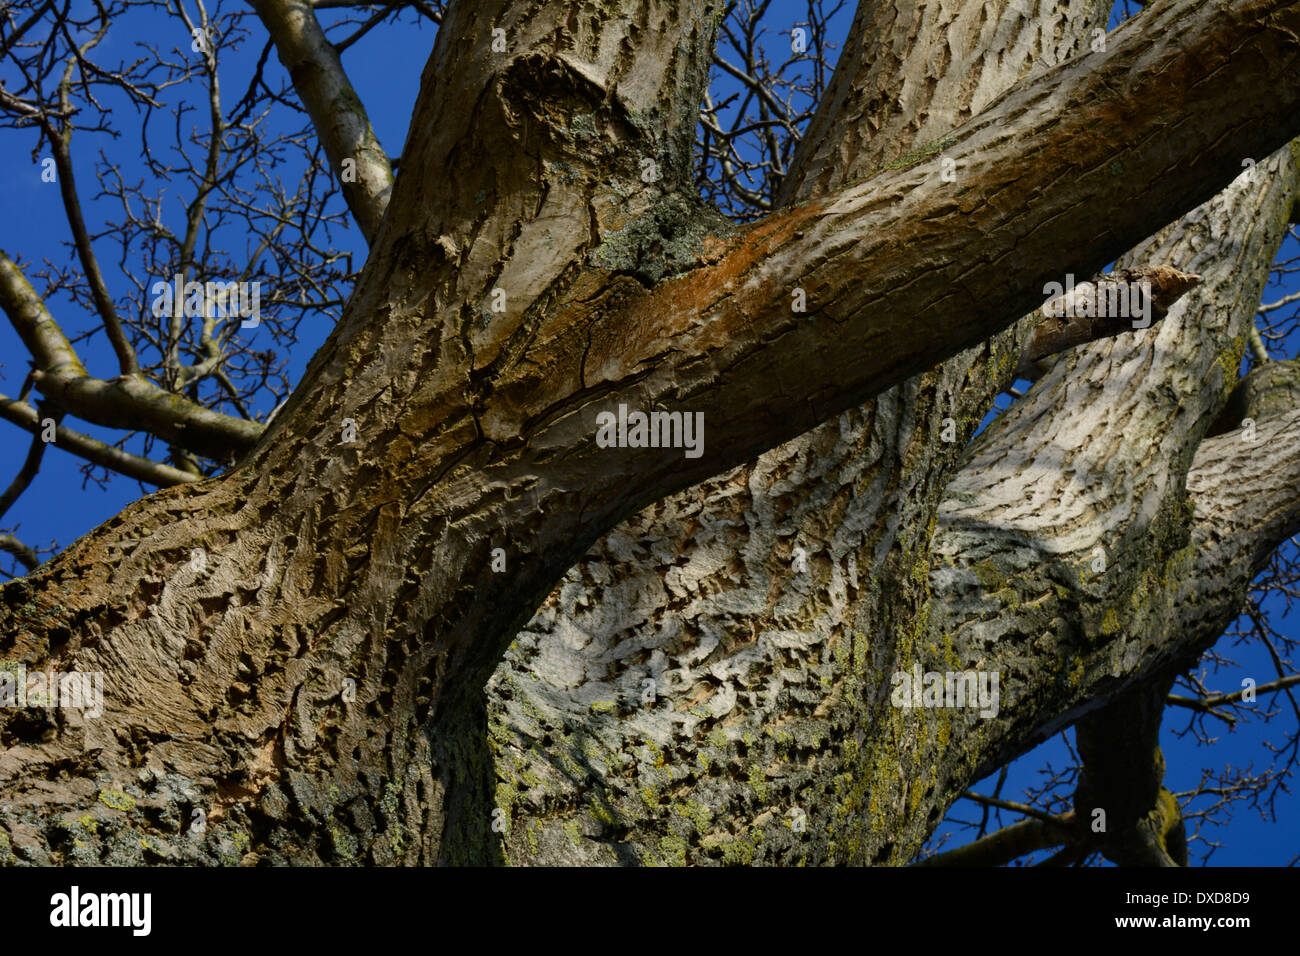 Big old tree trunk and branches without leaves with blue sky Großer alter Baum Baumstamm mit Zweigen ohne Blätter - Stock Image